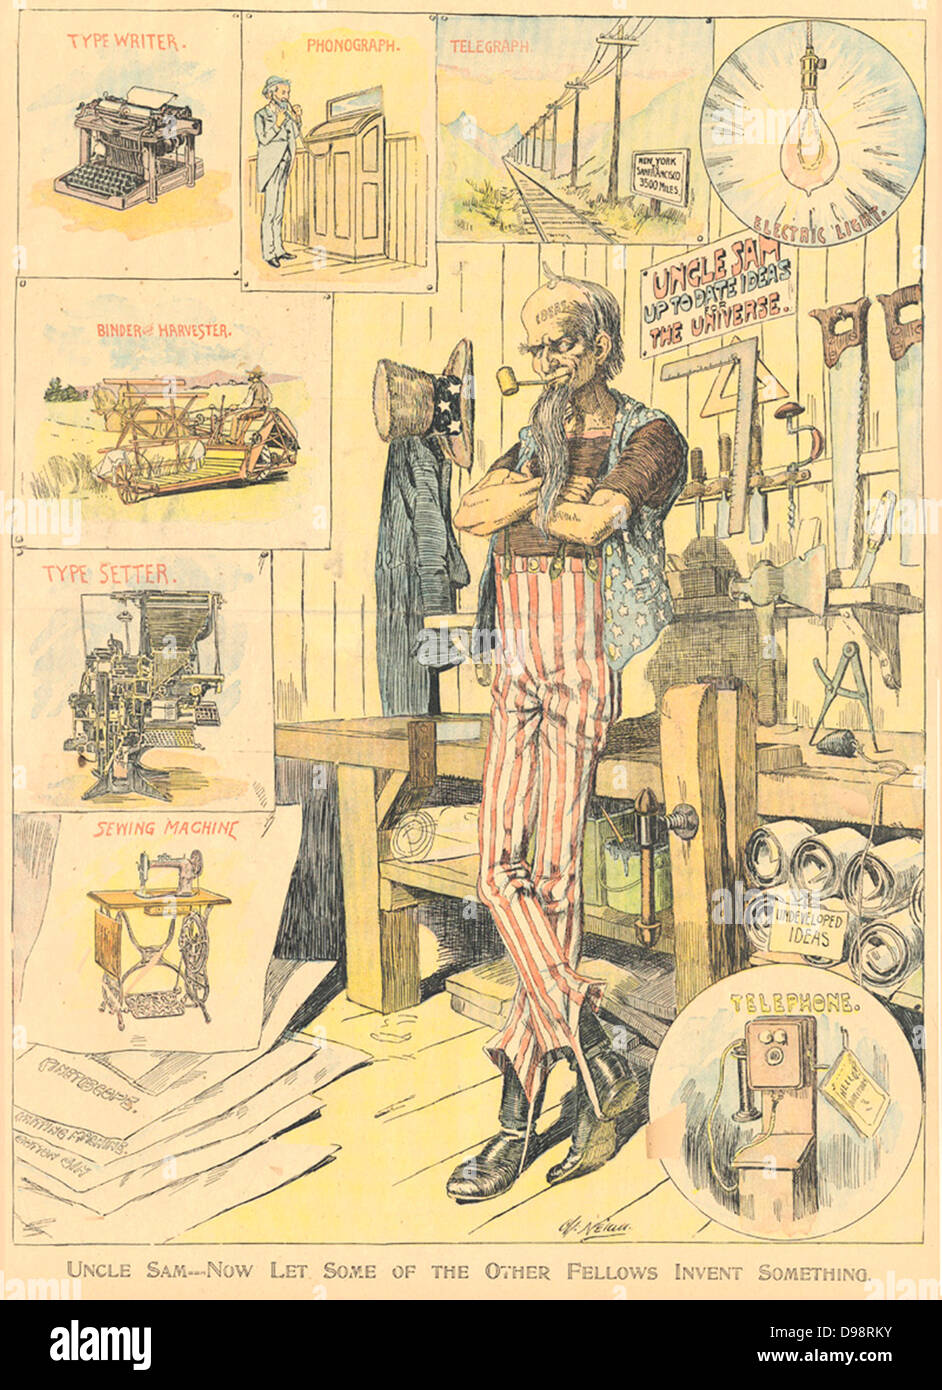 Uncle Sam--Now Let Some of the Other Fellows Invent Something by Charles Nelan, New York Herald, January 9, 1898. Stock Photo